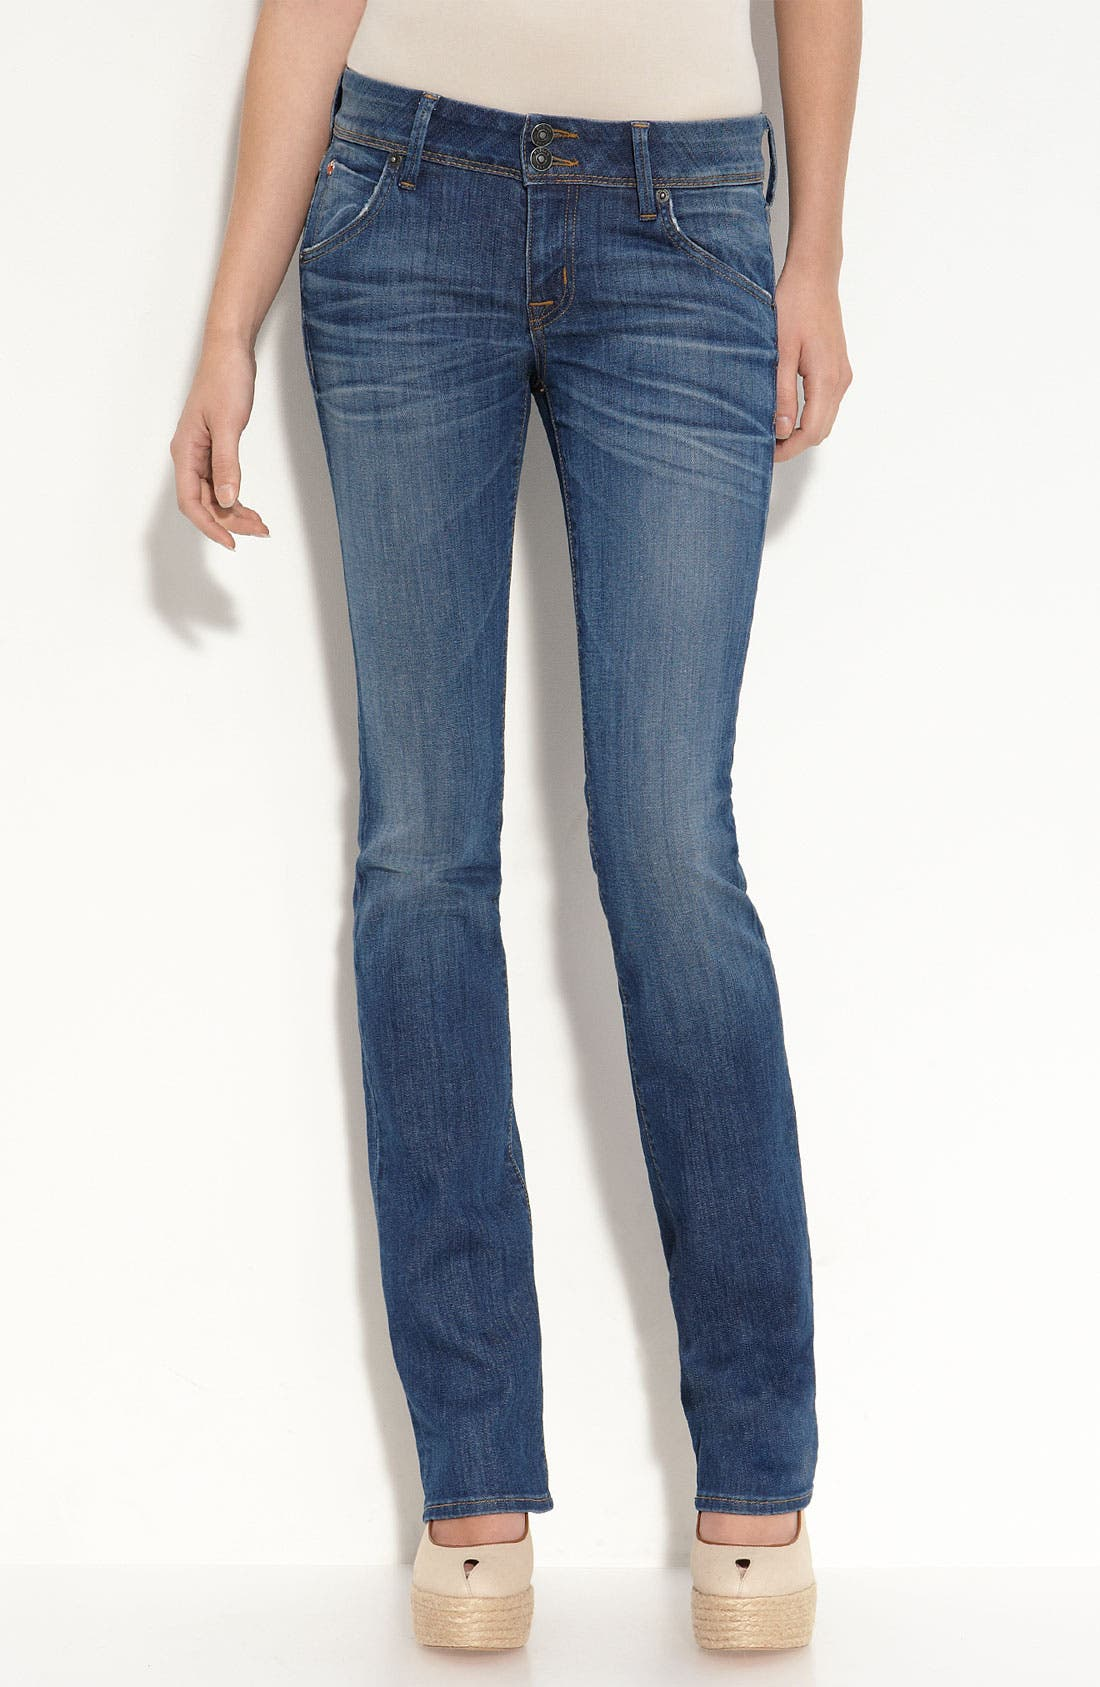 Alternate Image 1 Selected - Hudson Jeans 'Baby Boot' Bootcut Stretch Denim Jeans (I Want To)